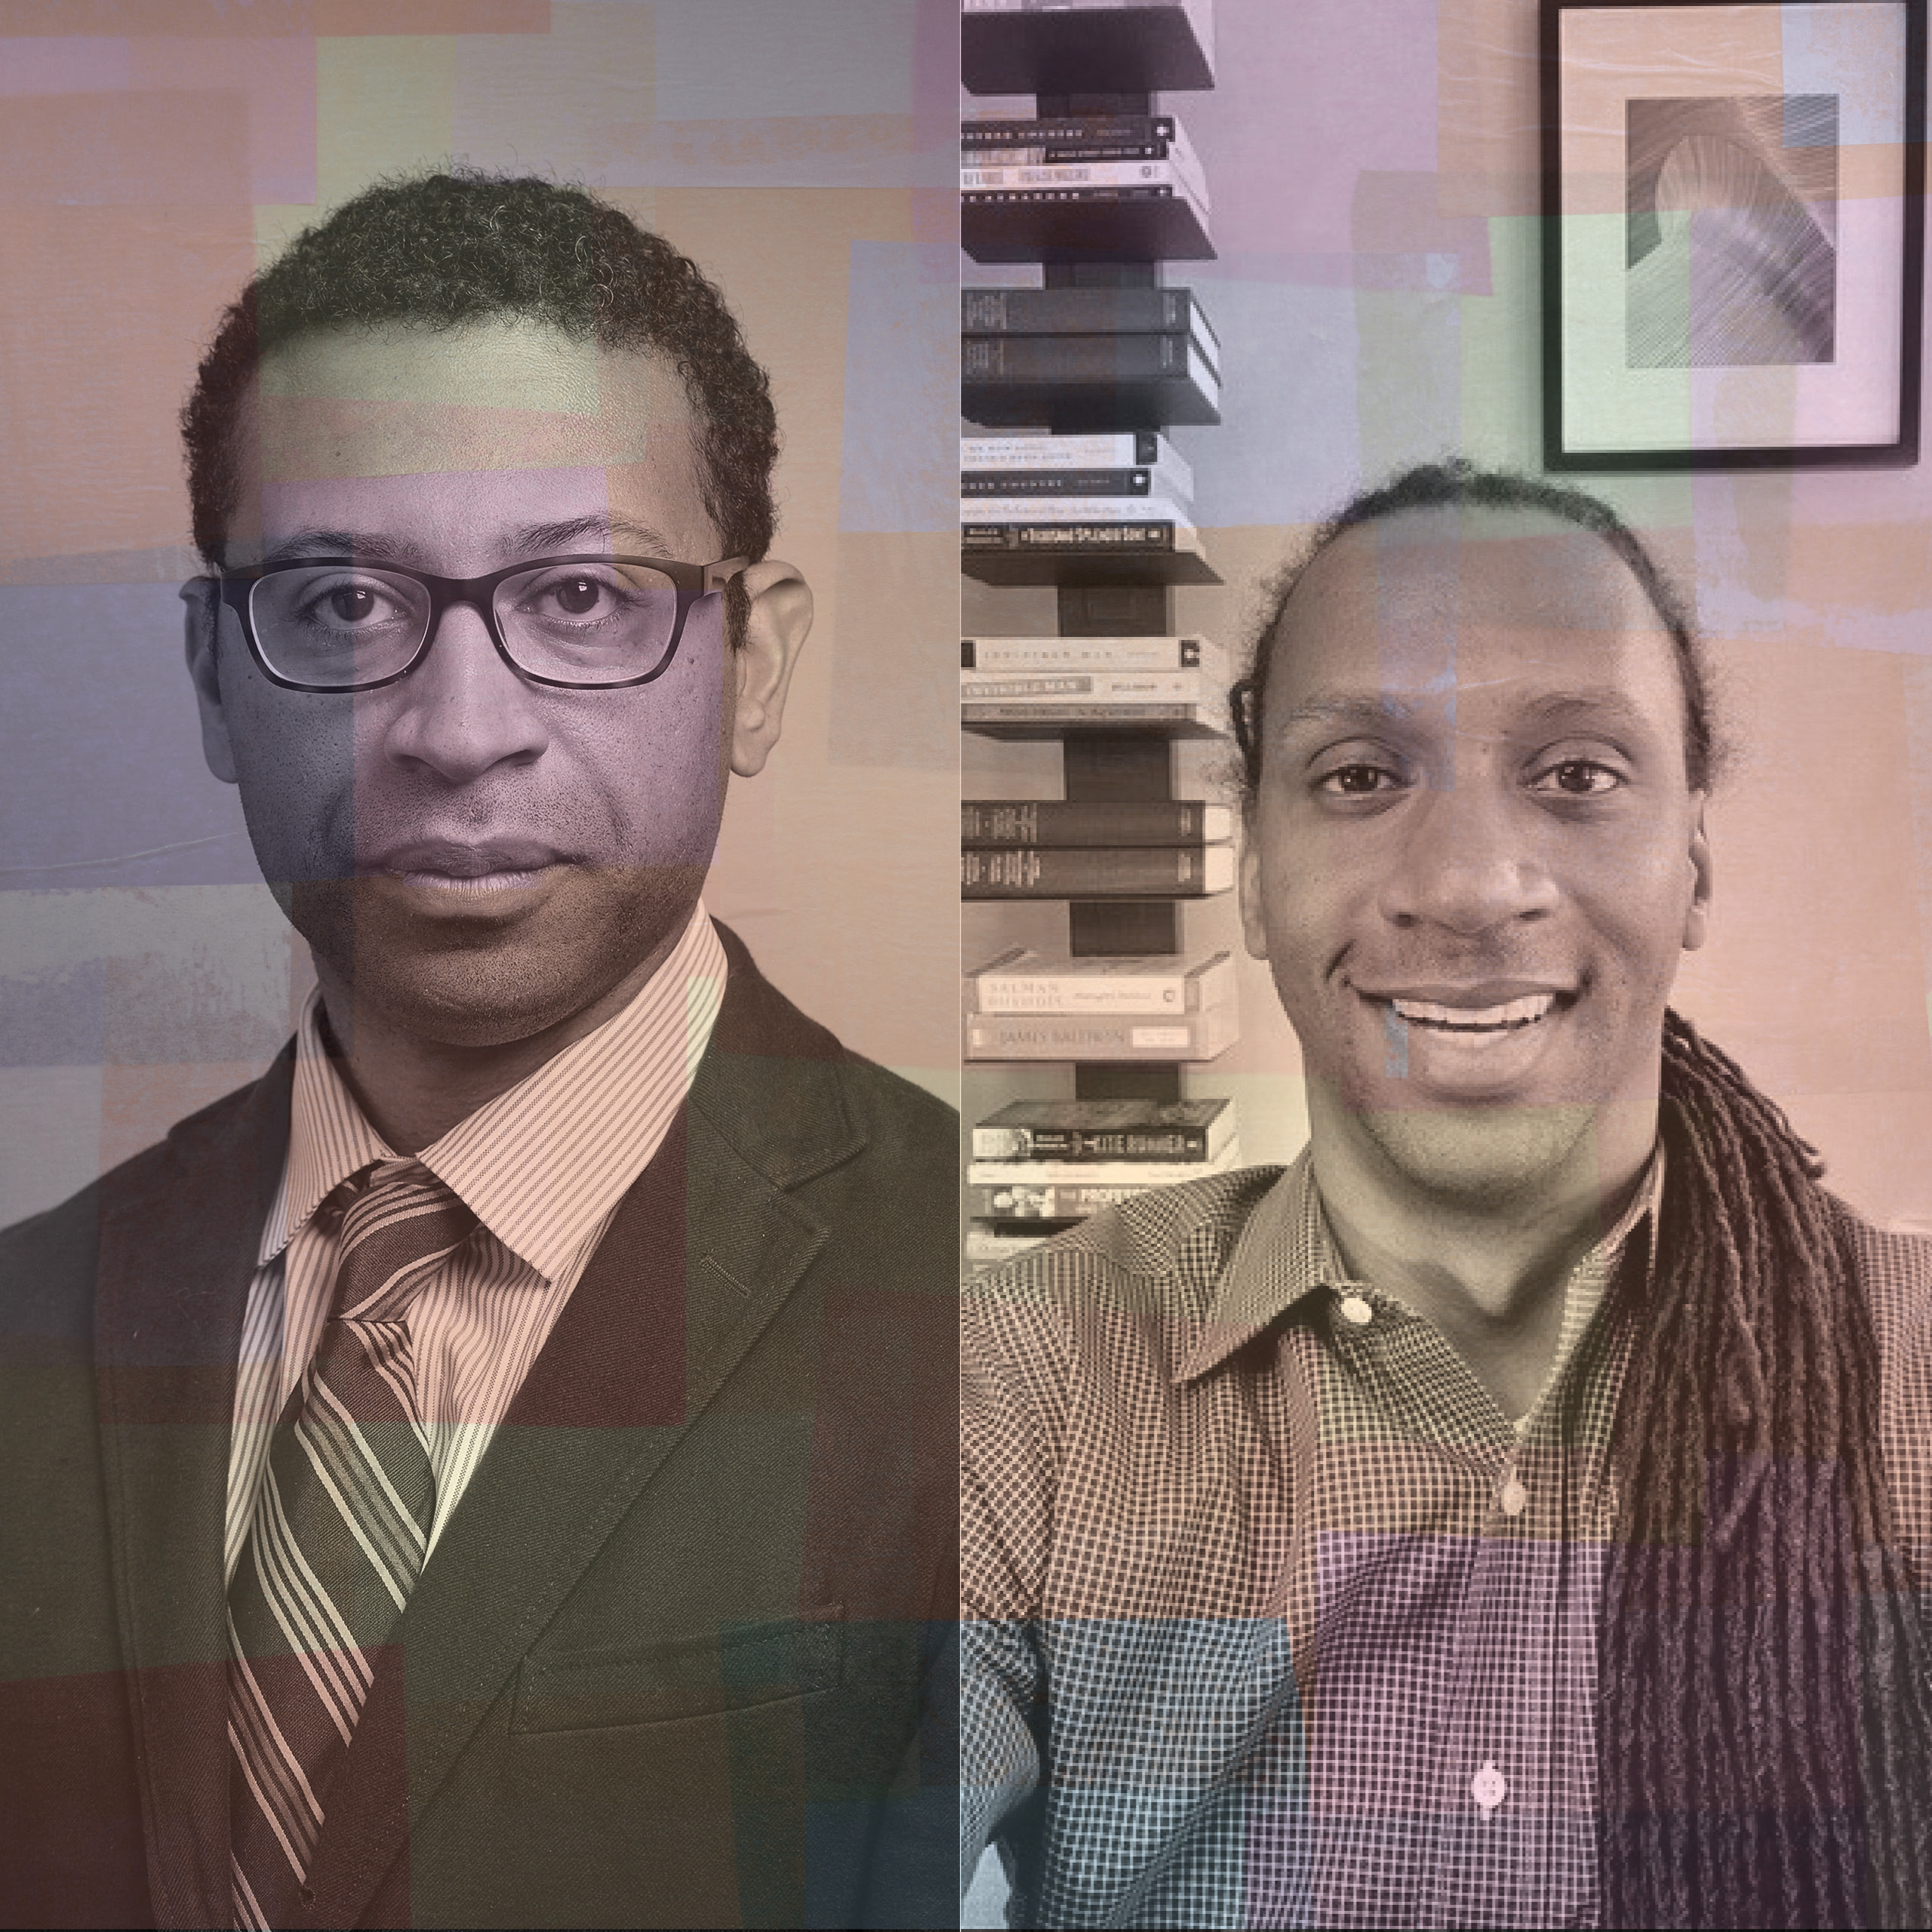 AAMC and StoryCorps presents : Cecil Webster and Dowin Boatright